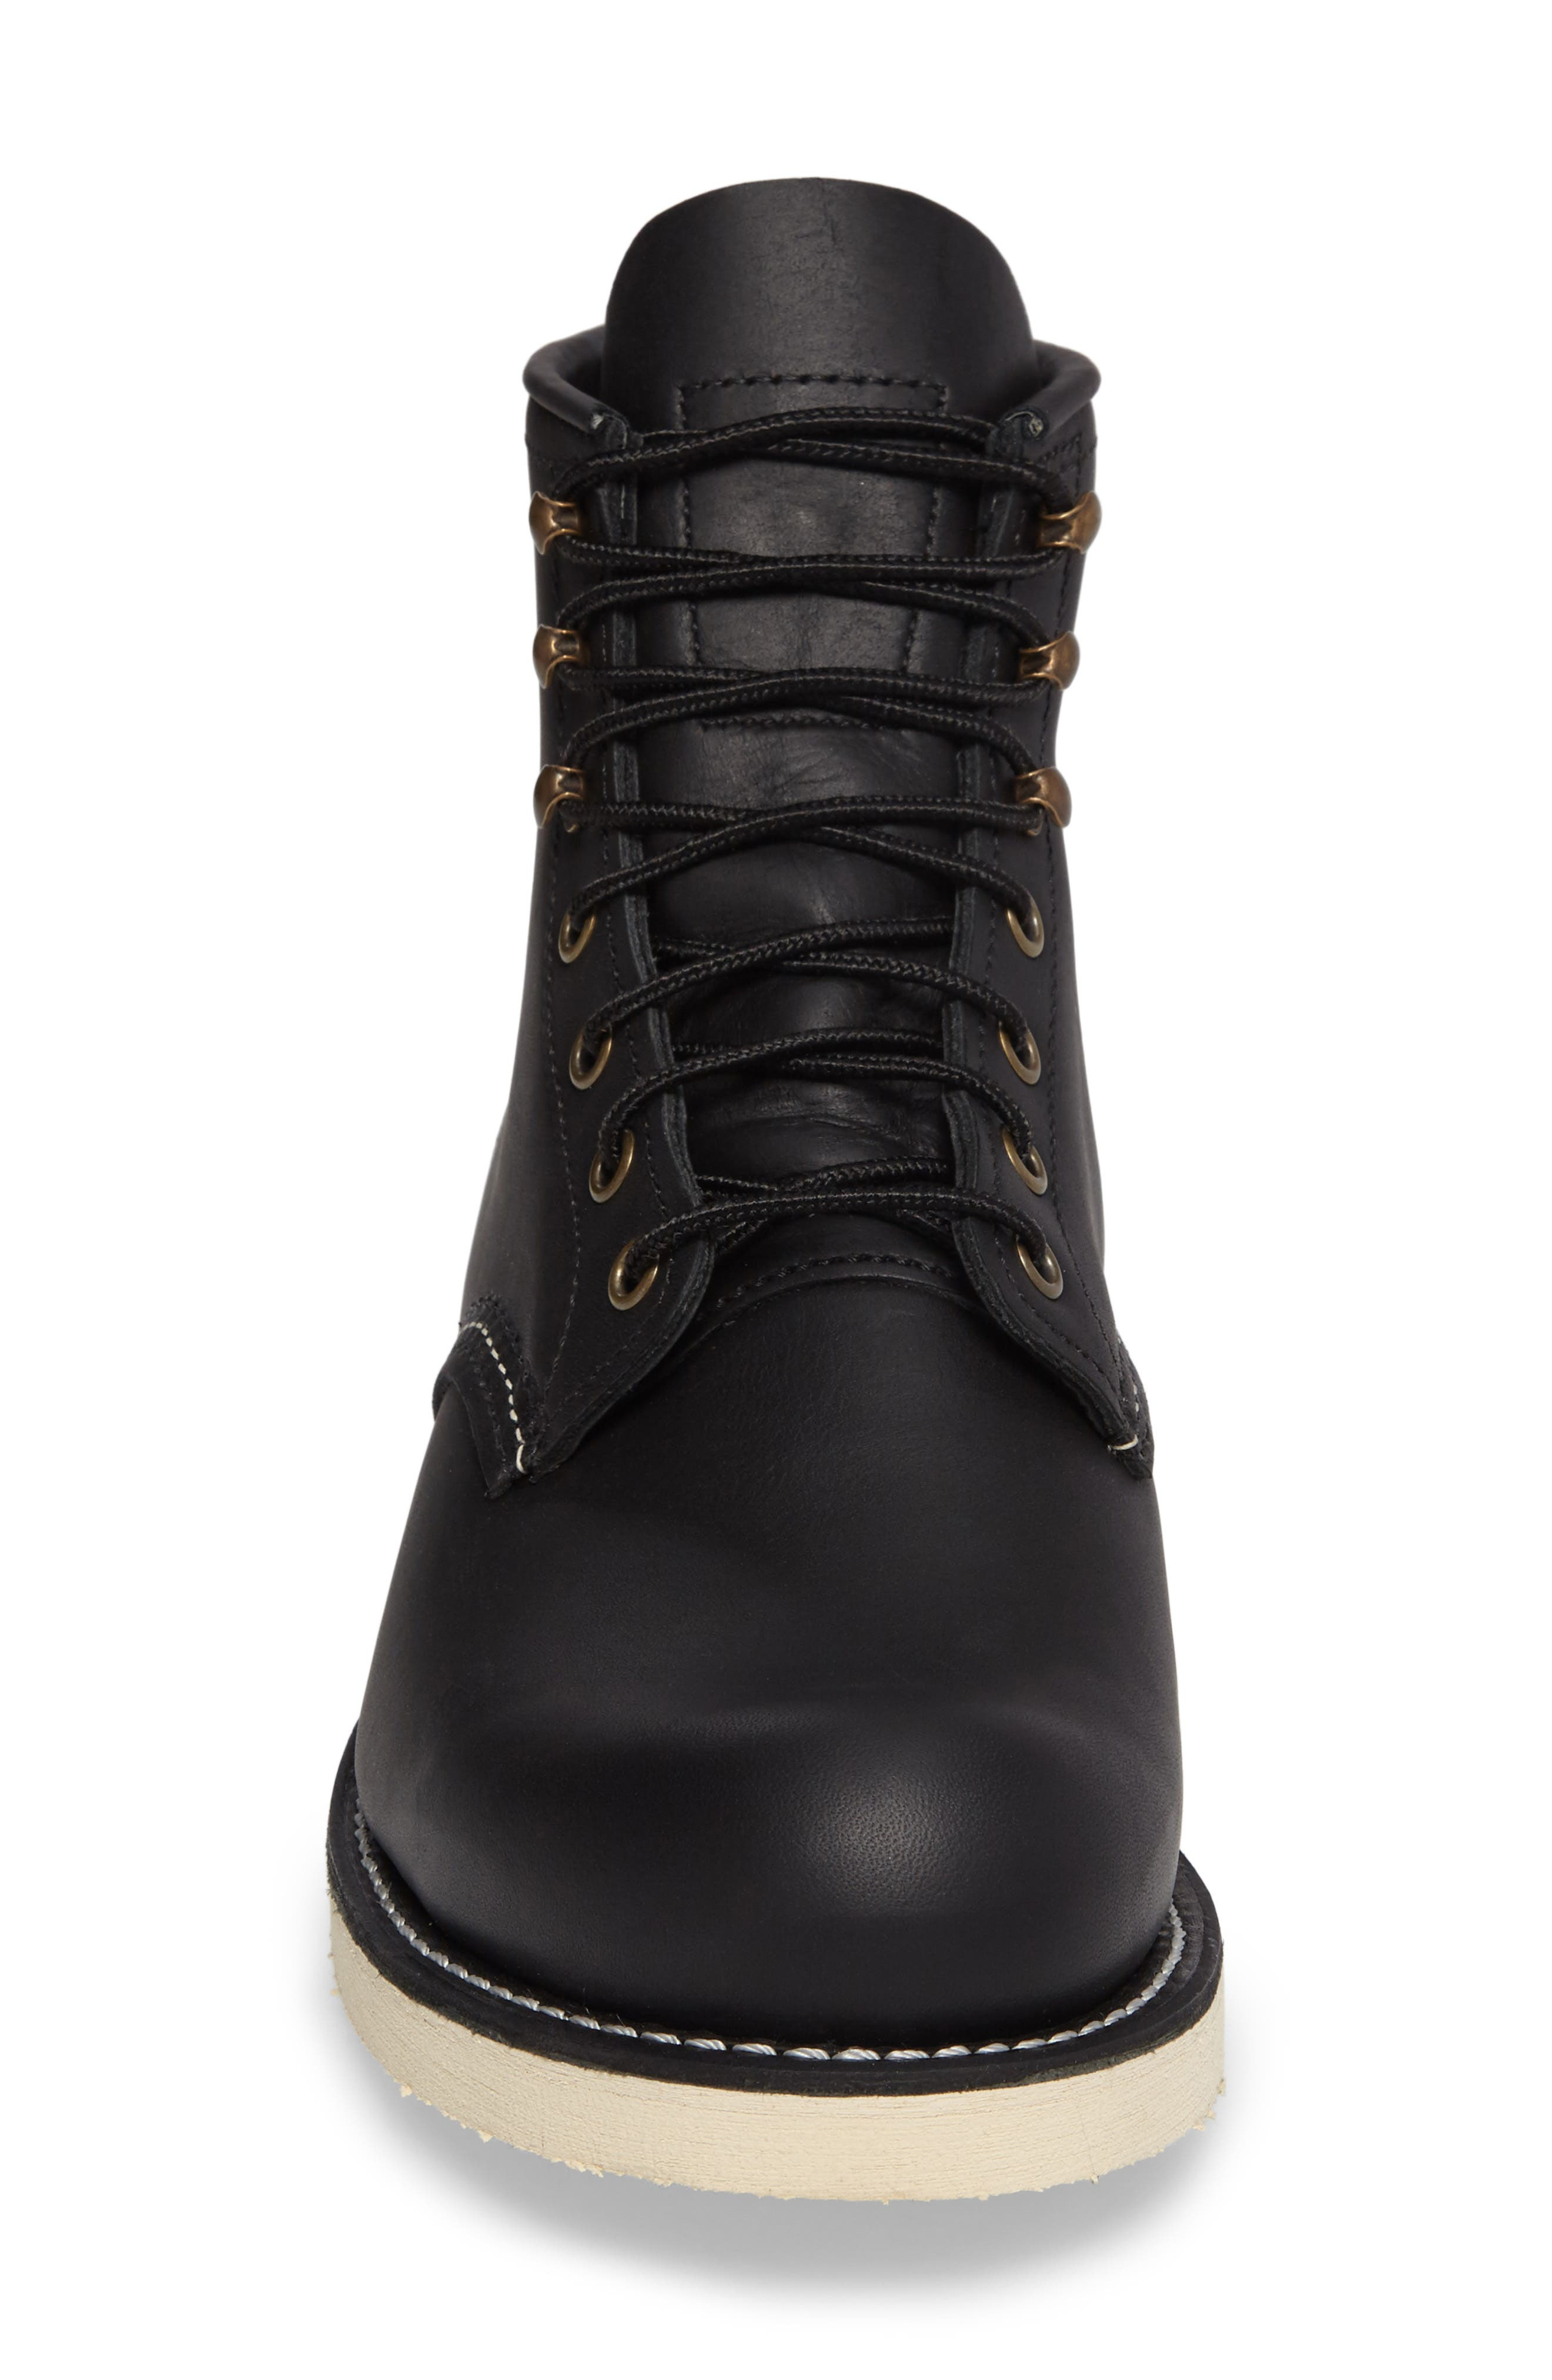 RED WING, Rover Plain Toe Boot, Alternate thumbnail 4, color, BLACK HARNESS LEATHER